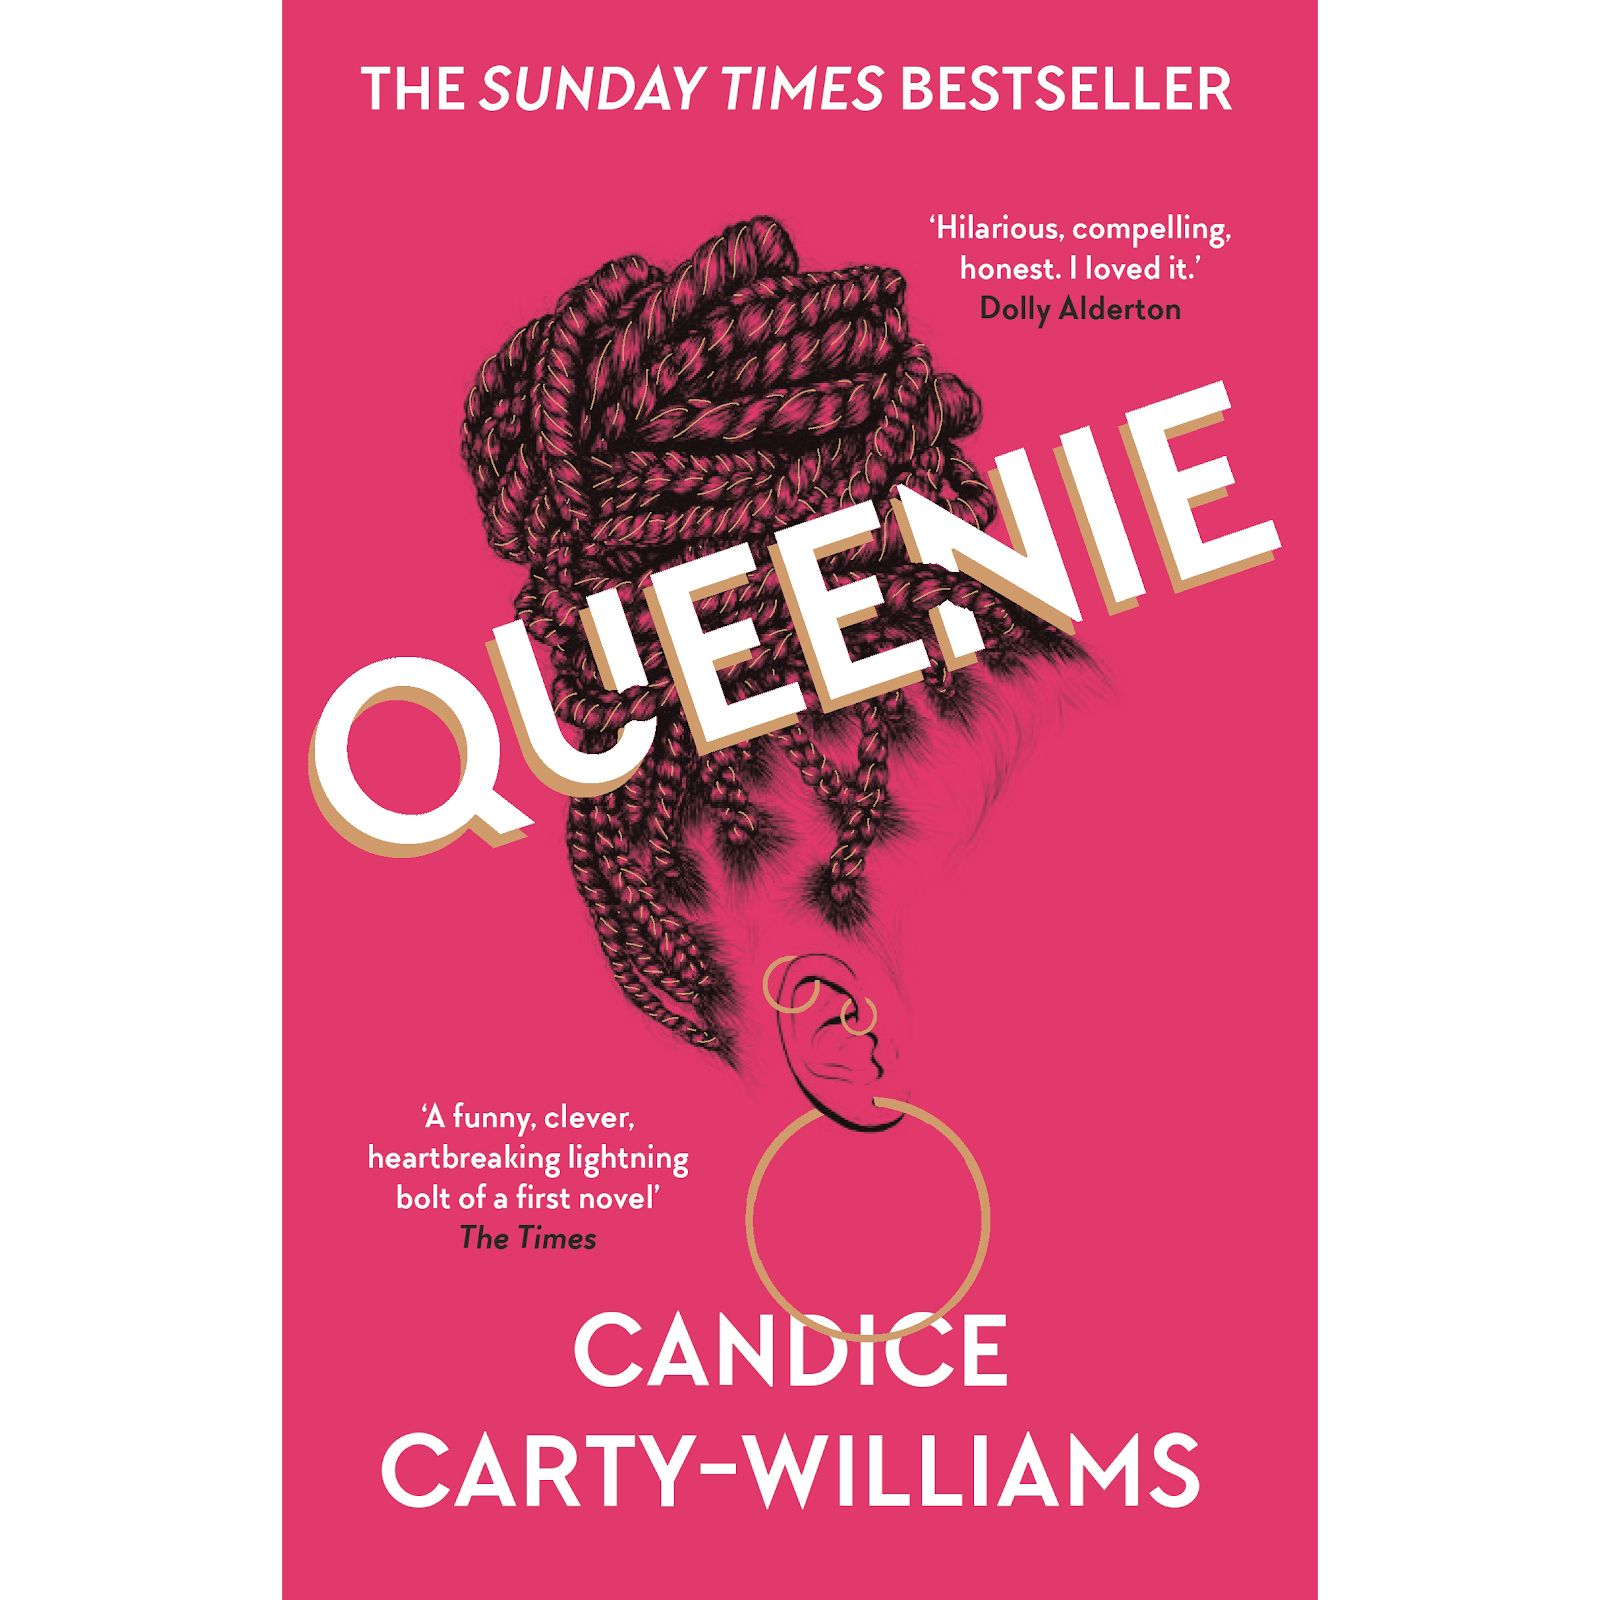 Book cover for Queenie by Candice Carty-Williams Queenie in the South Manchester, Chorlton, Cheadle, Fallowfield, Burnage, Levenshulme, Heaton Moor, Heaton Mersey, Heaton Norris, Heaton Chapel, Northenden, and Didsbury book group